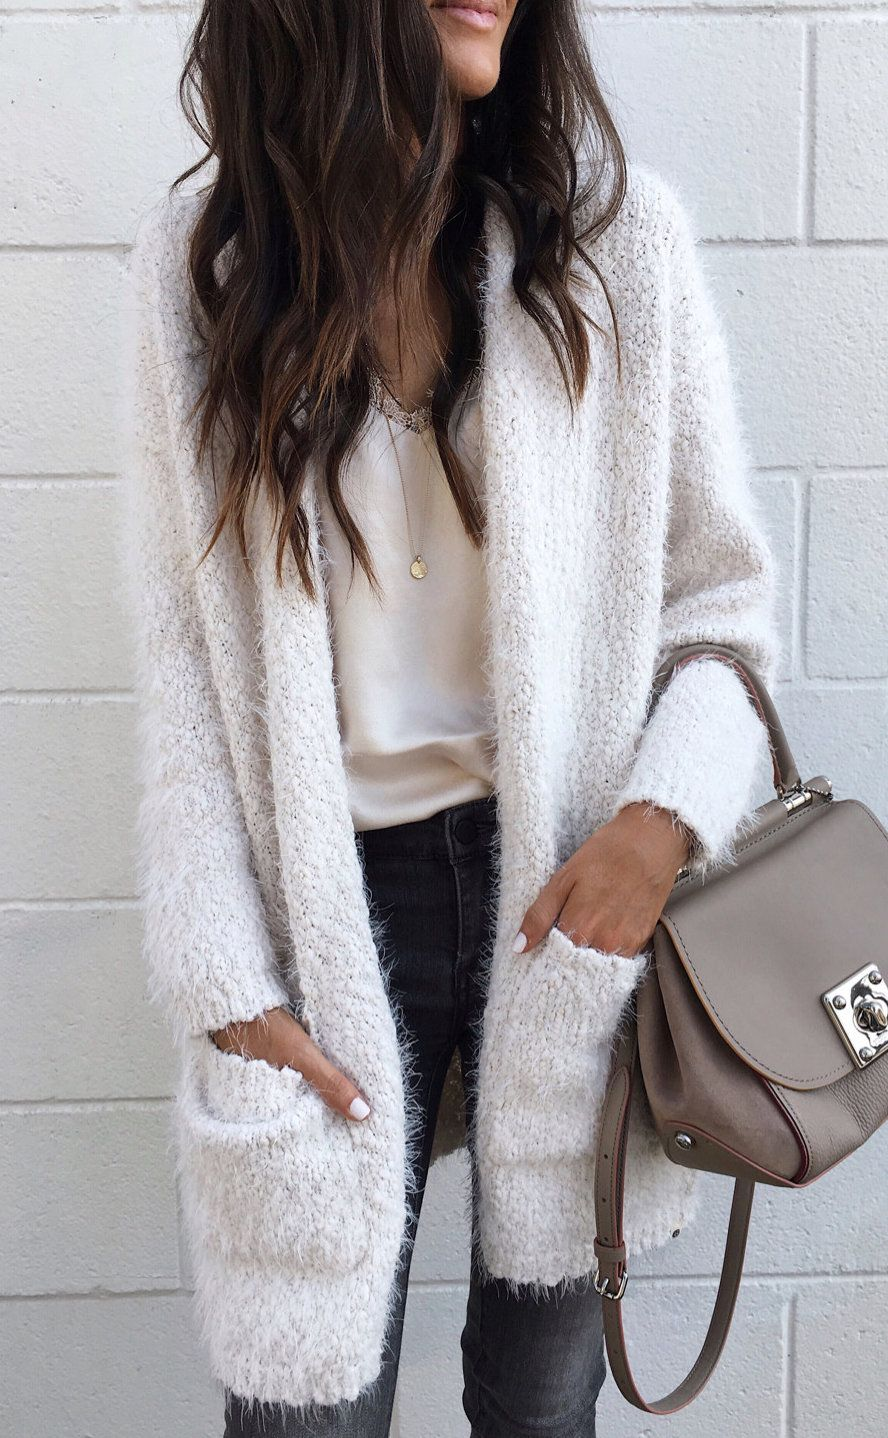 a5aff36597  fall  outfits women s white cardigan and brown leather 2-way bag